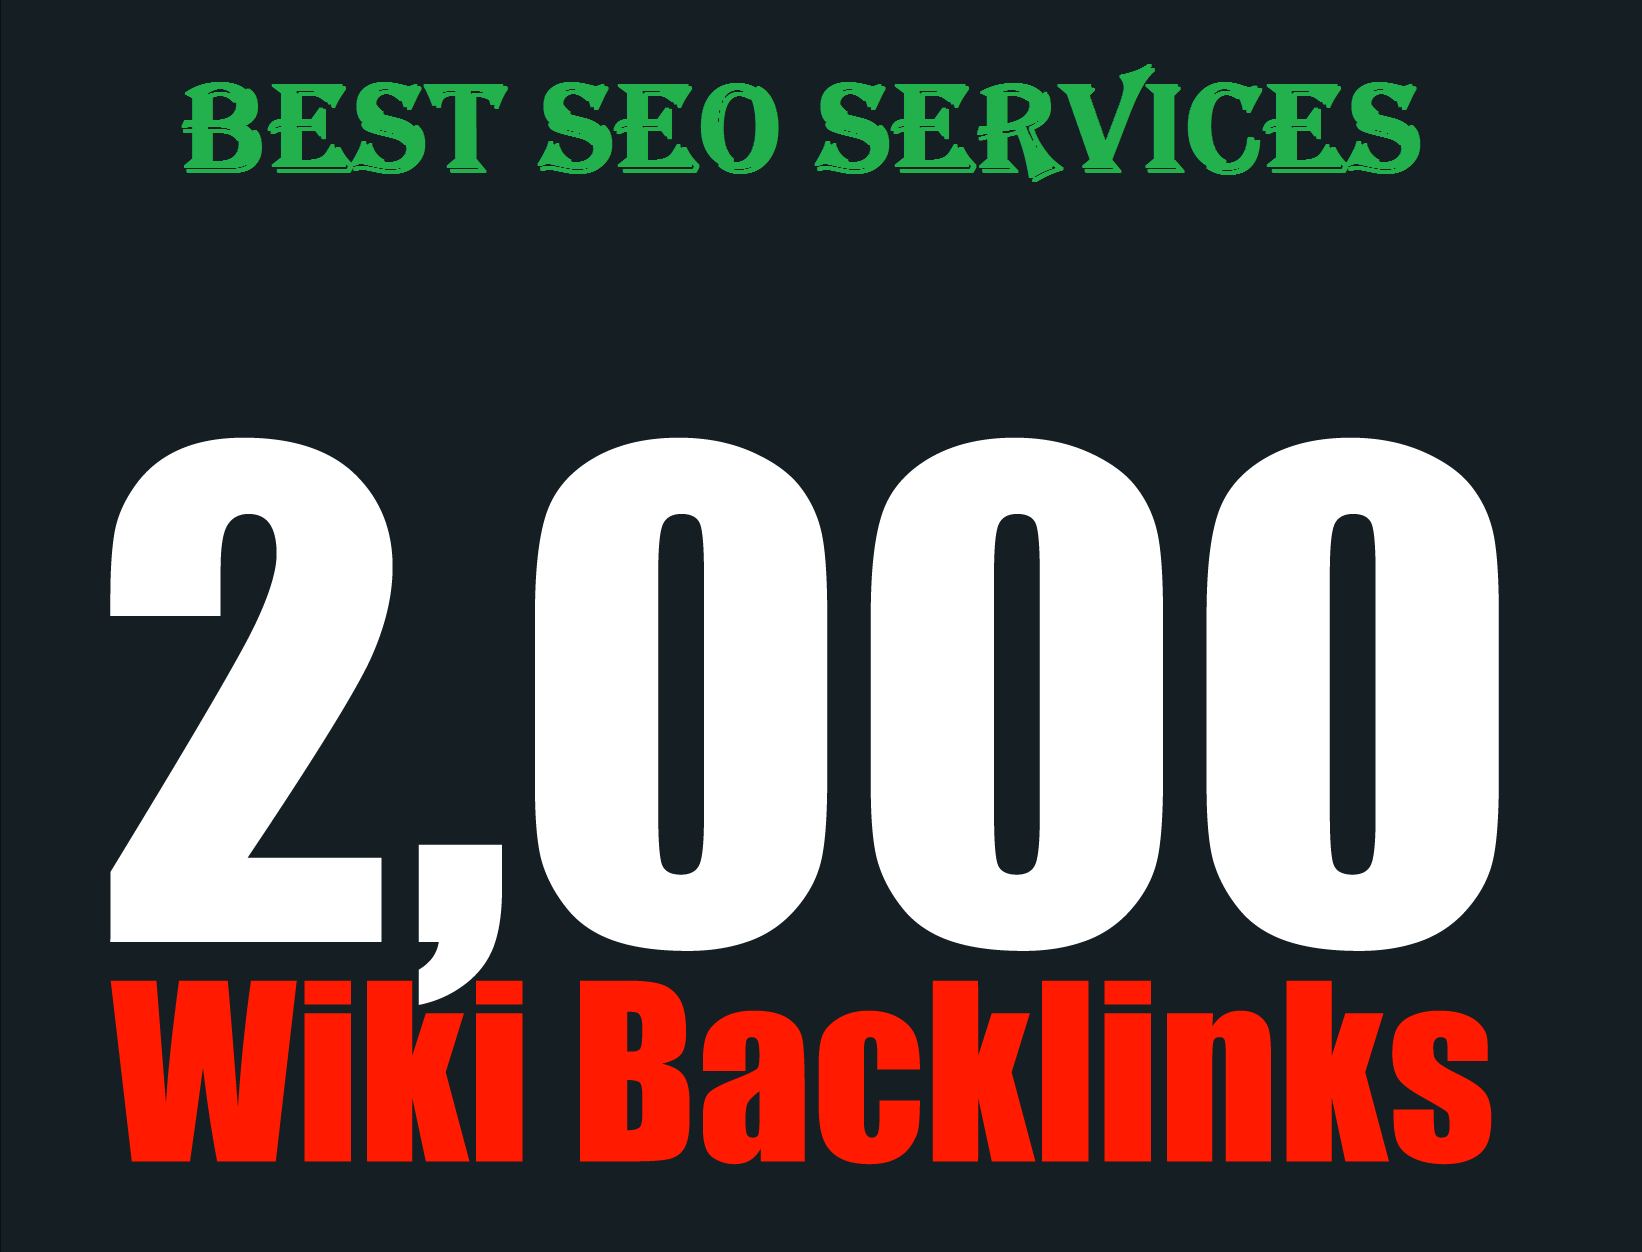 Provide more than 2000 high quality Wiki Backlinks best for your seo